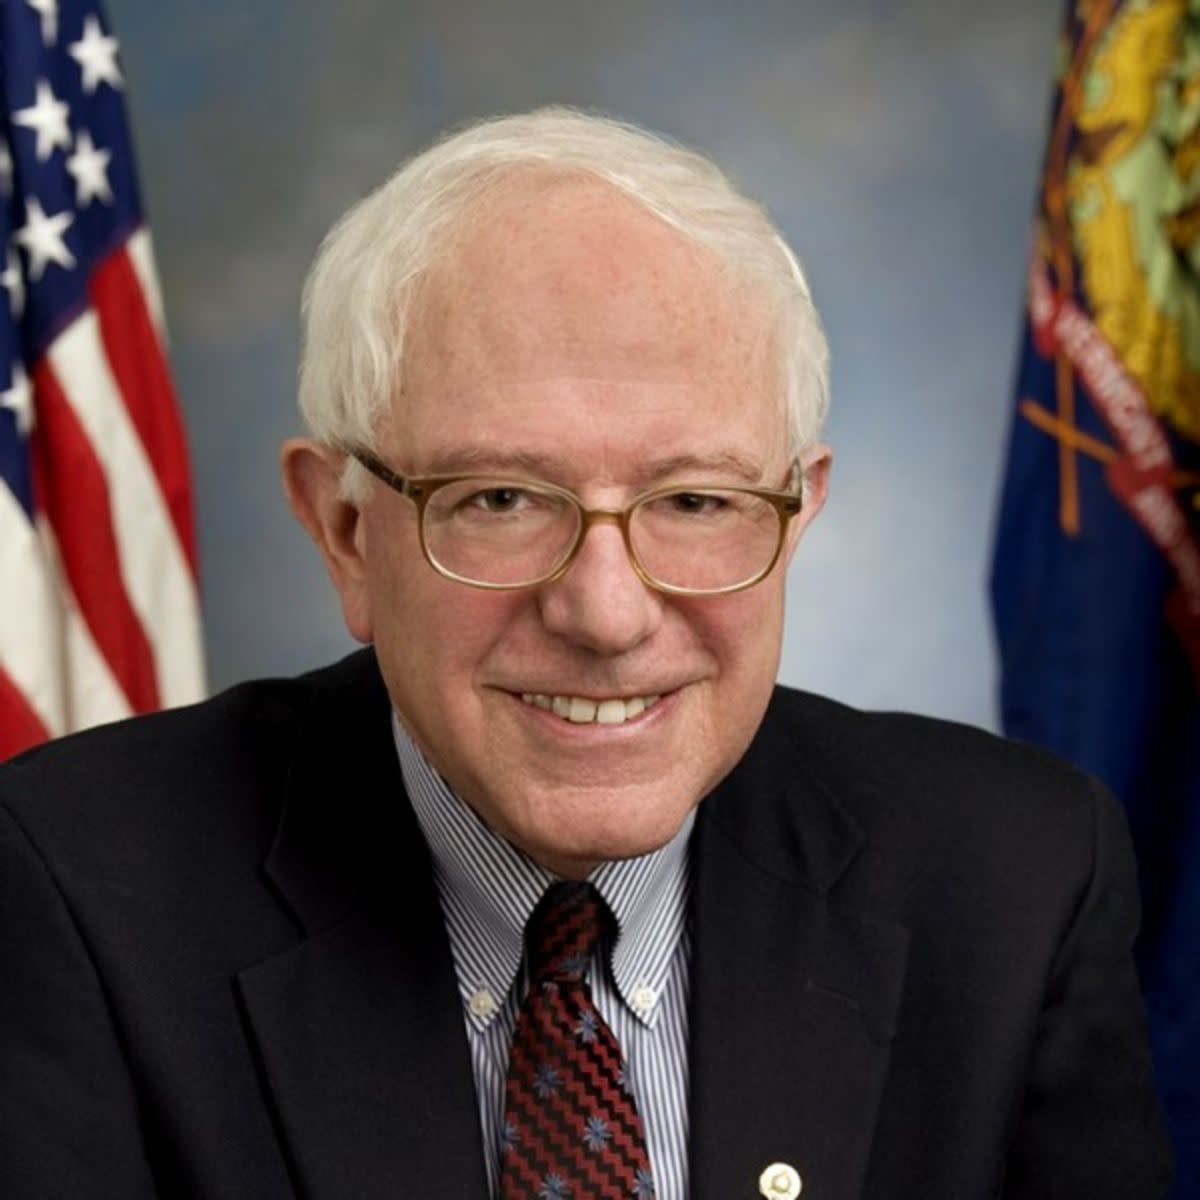 Bernie Sanders is sometimes classified as an Independent although he ran for president in 2016 representing the Democratic Party. He is once again a candidate for the 2020 election.